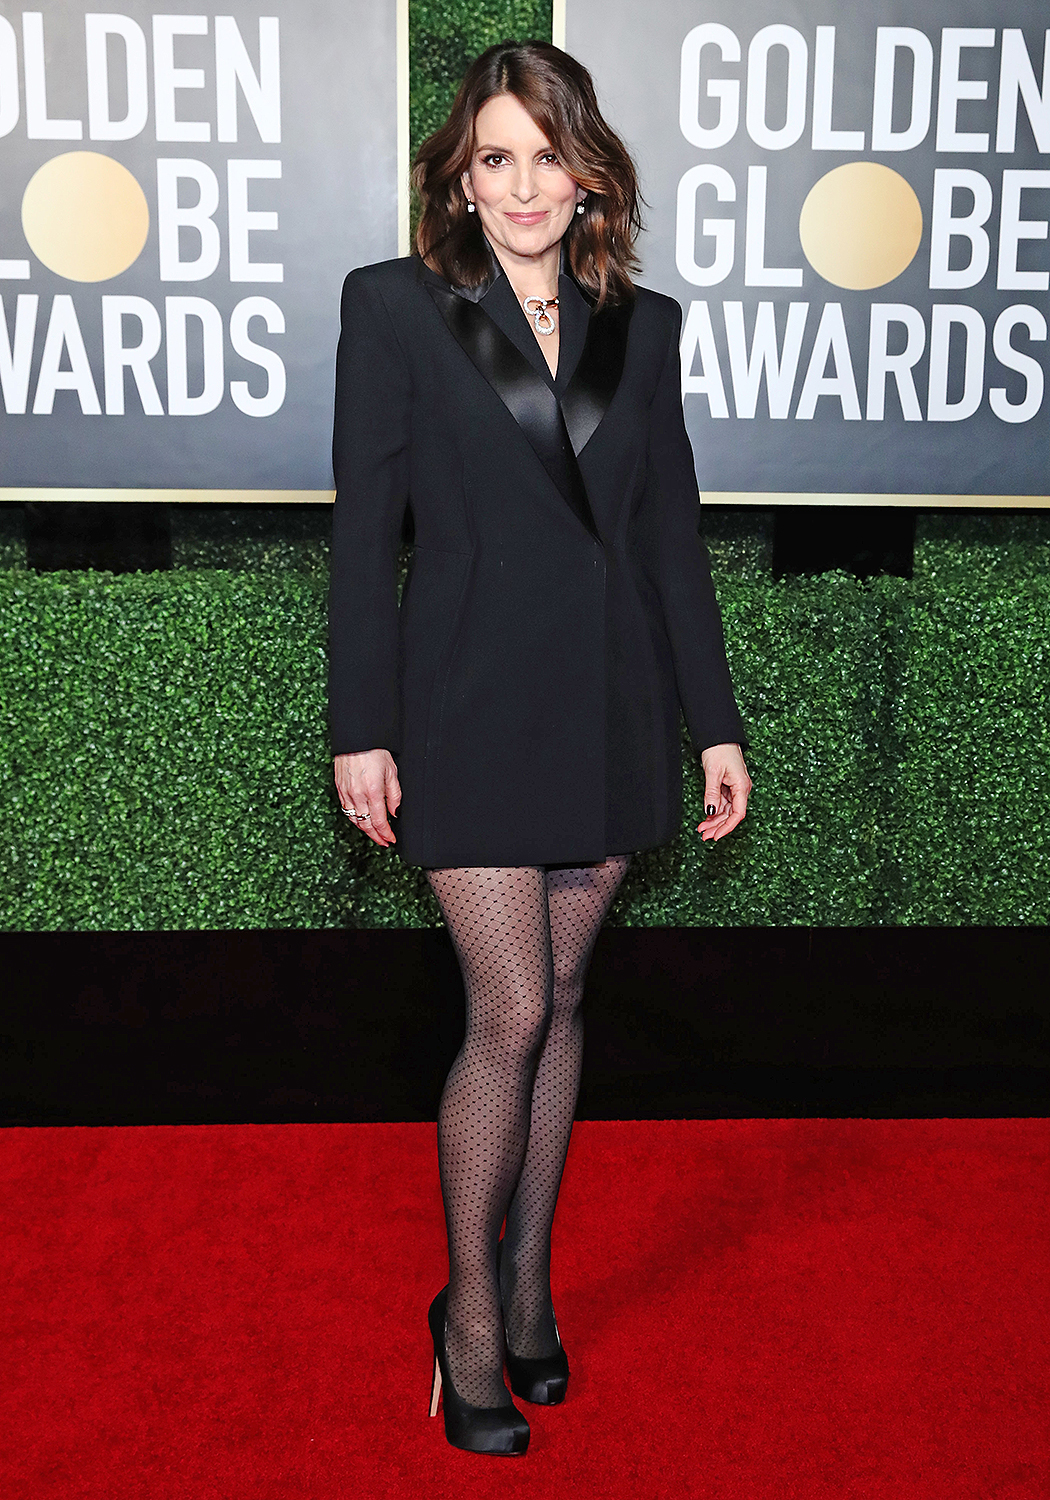 Co-host Tina Fey attends the 78th Annual Golden Globe Awards held at The Rainbow Room and broadcast on February 28, 2021